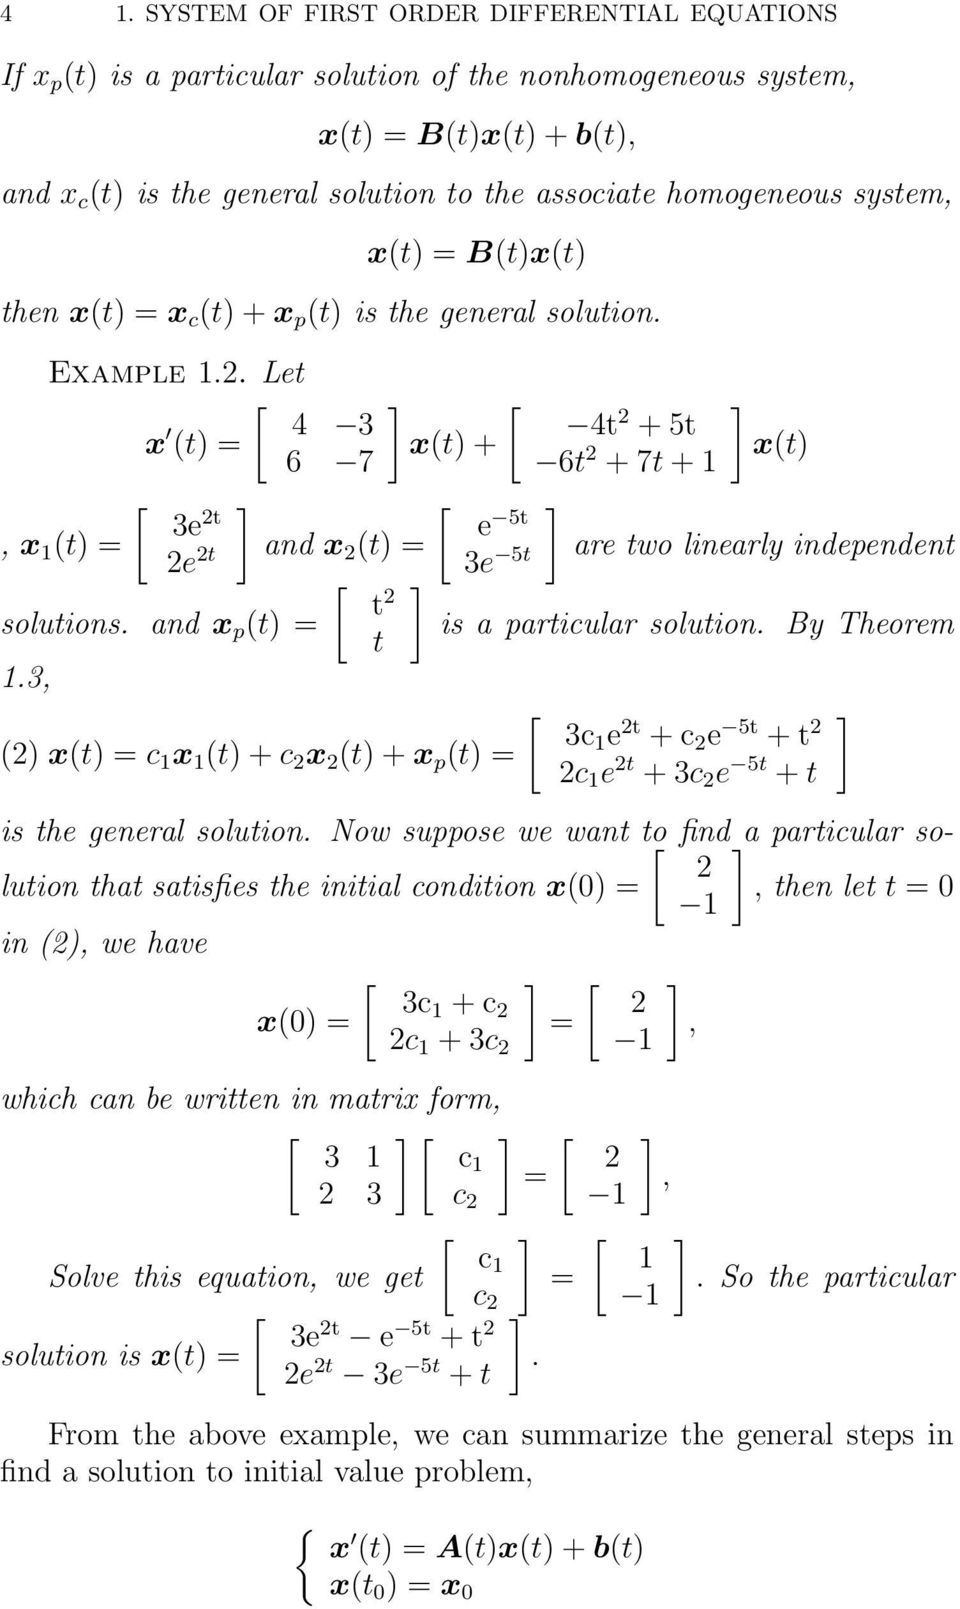 System of First Order Differential Equations - PDF